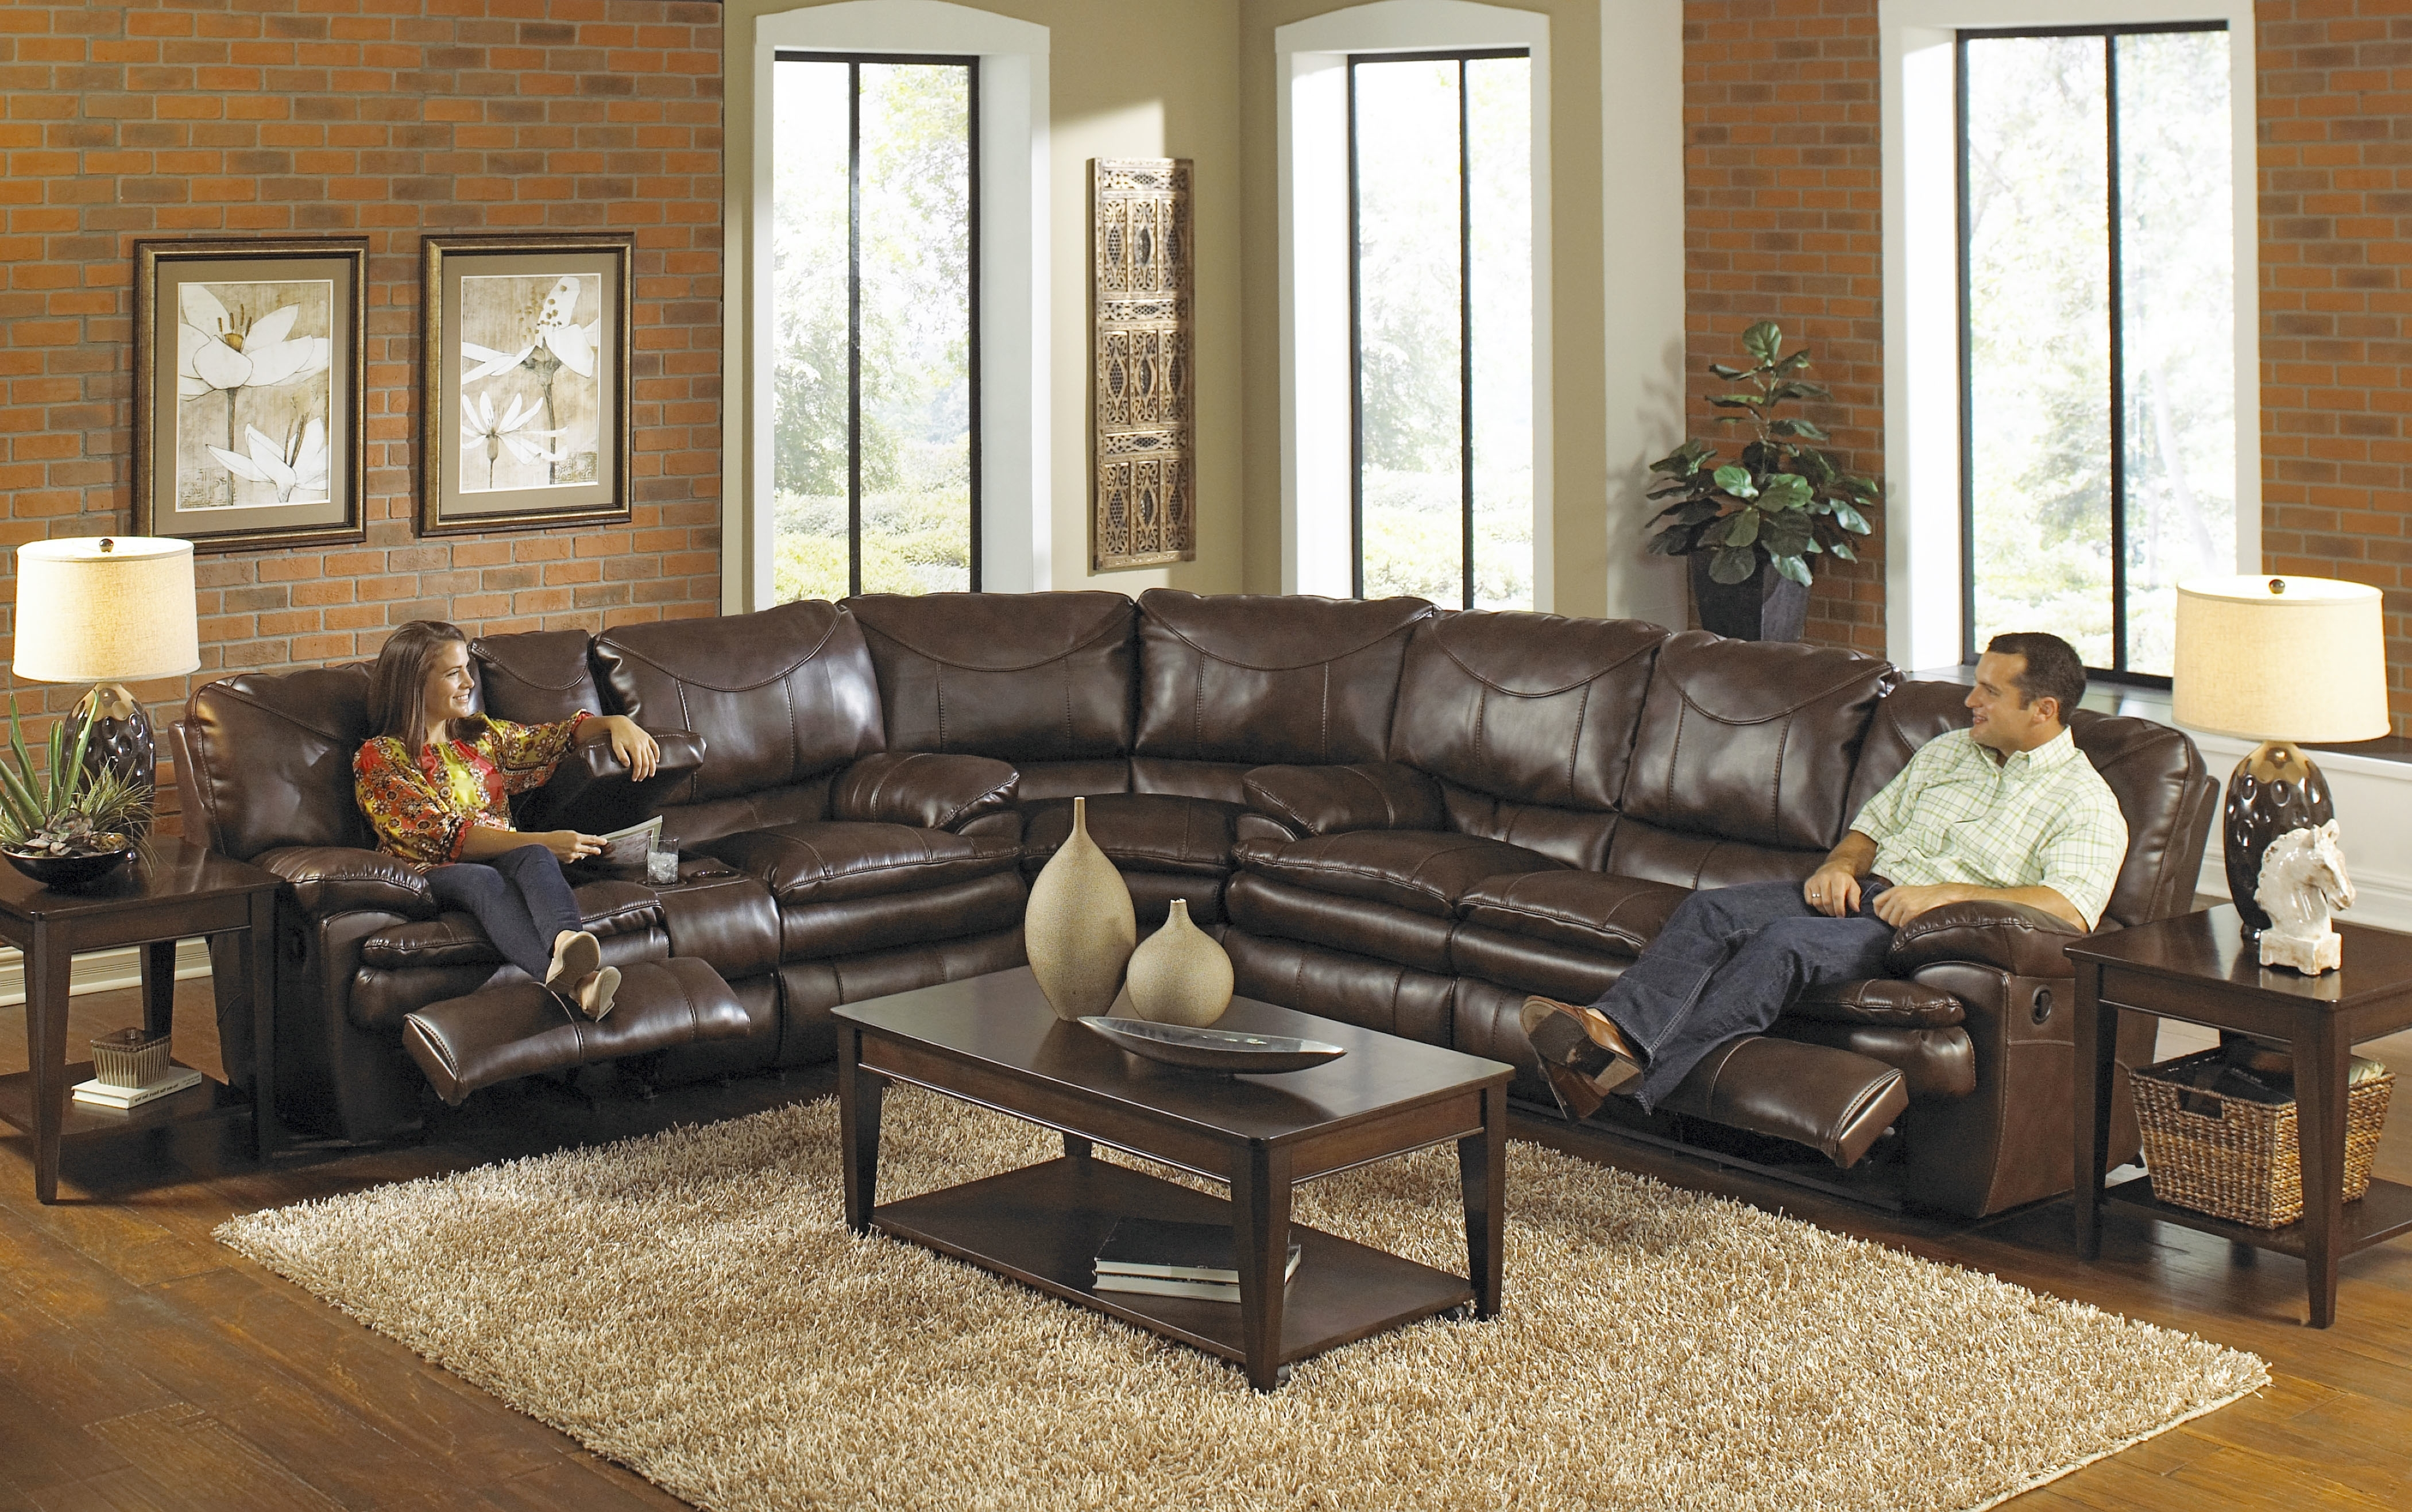 Virginia Sectional Sofas Pertaining To Fashionable Delivered Sofa With Chaise And Recliner Buy Large Sectional Sofas (View 10 of 20)